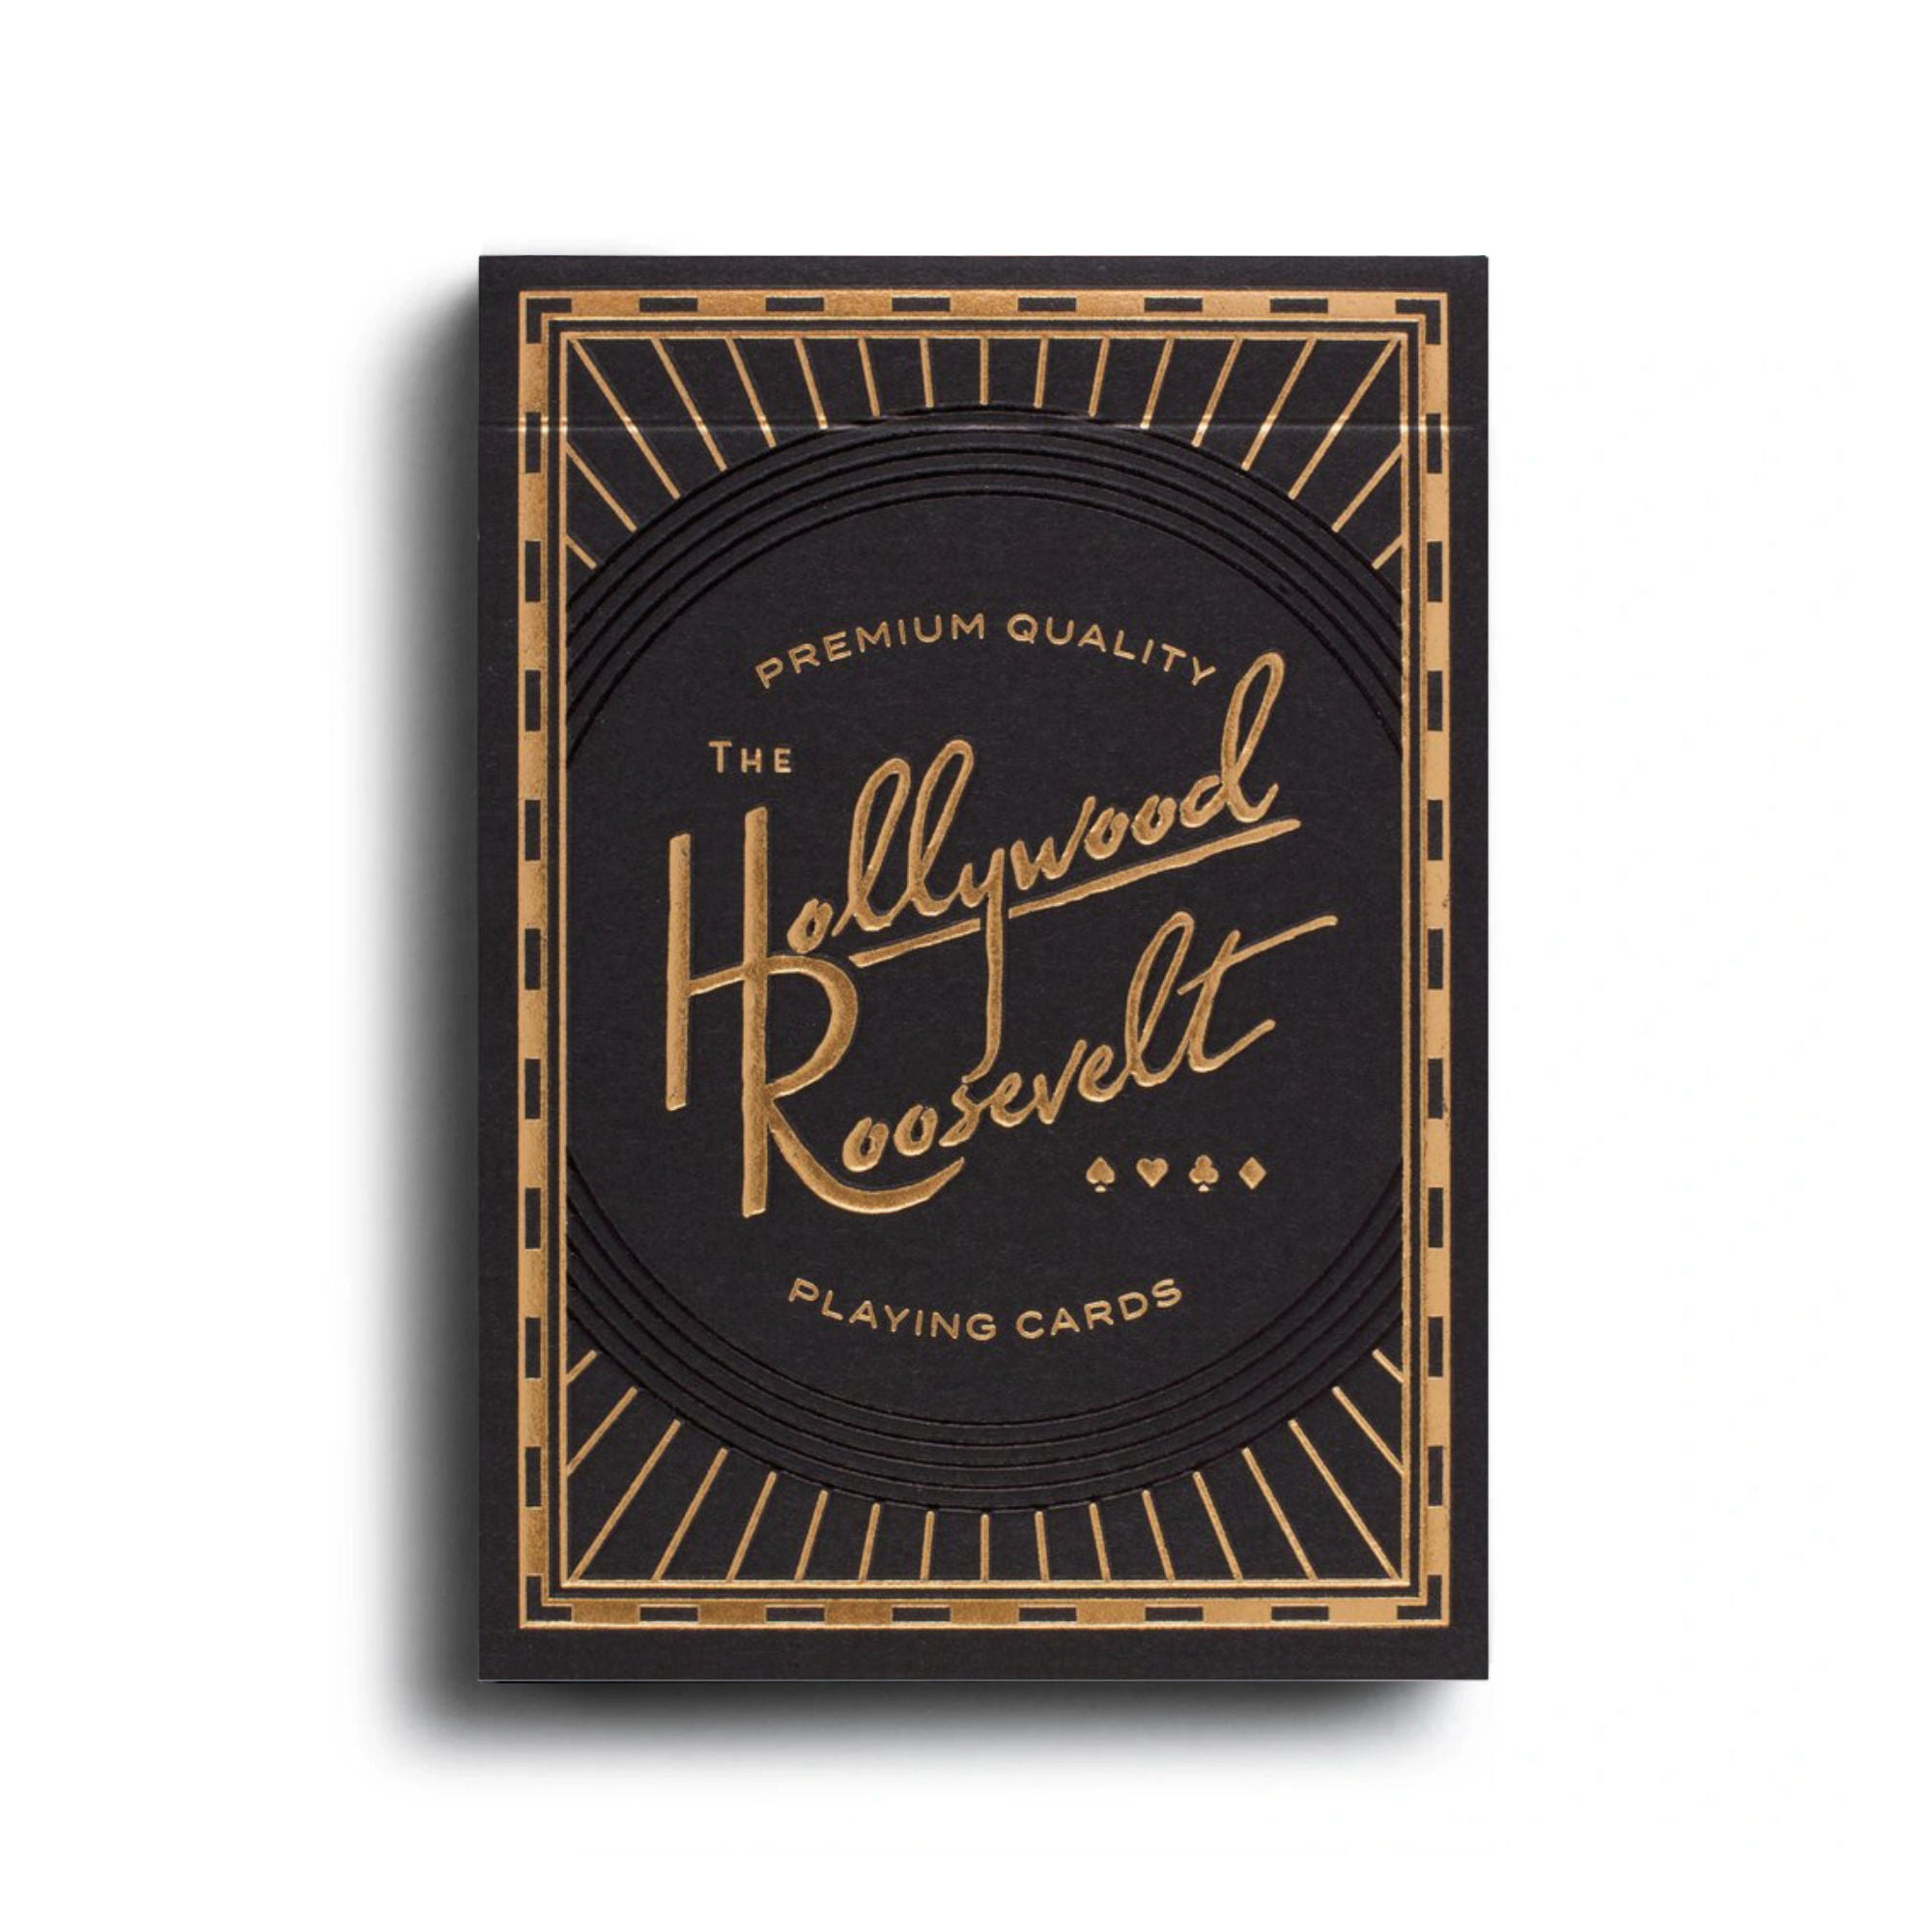 Theory11 Hollywood Roosevelt Playing Cards